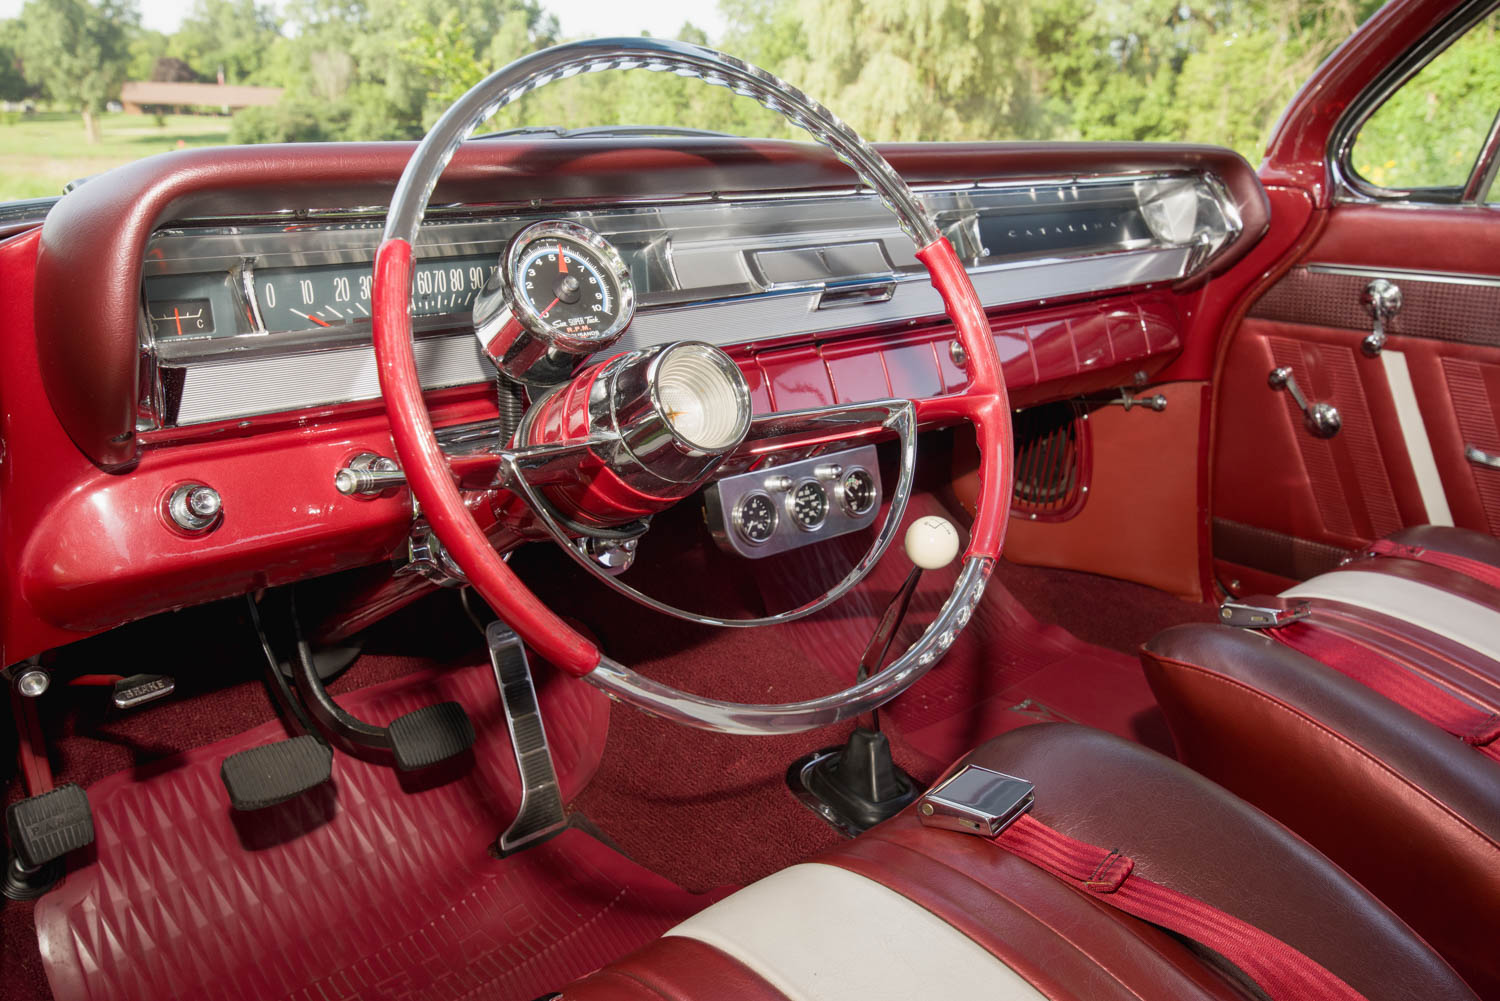 A panel covers the dash opening where the radio would have been on a standard Catalina. Note the tri-color Pontiac Ventura upholstery.